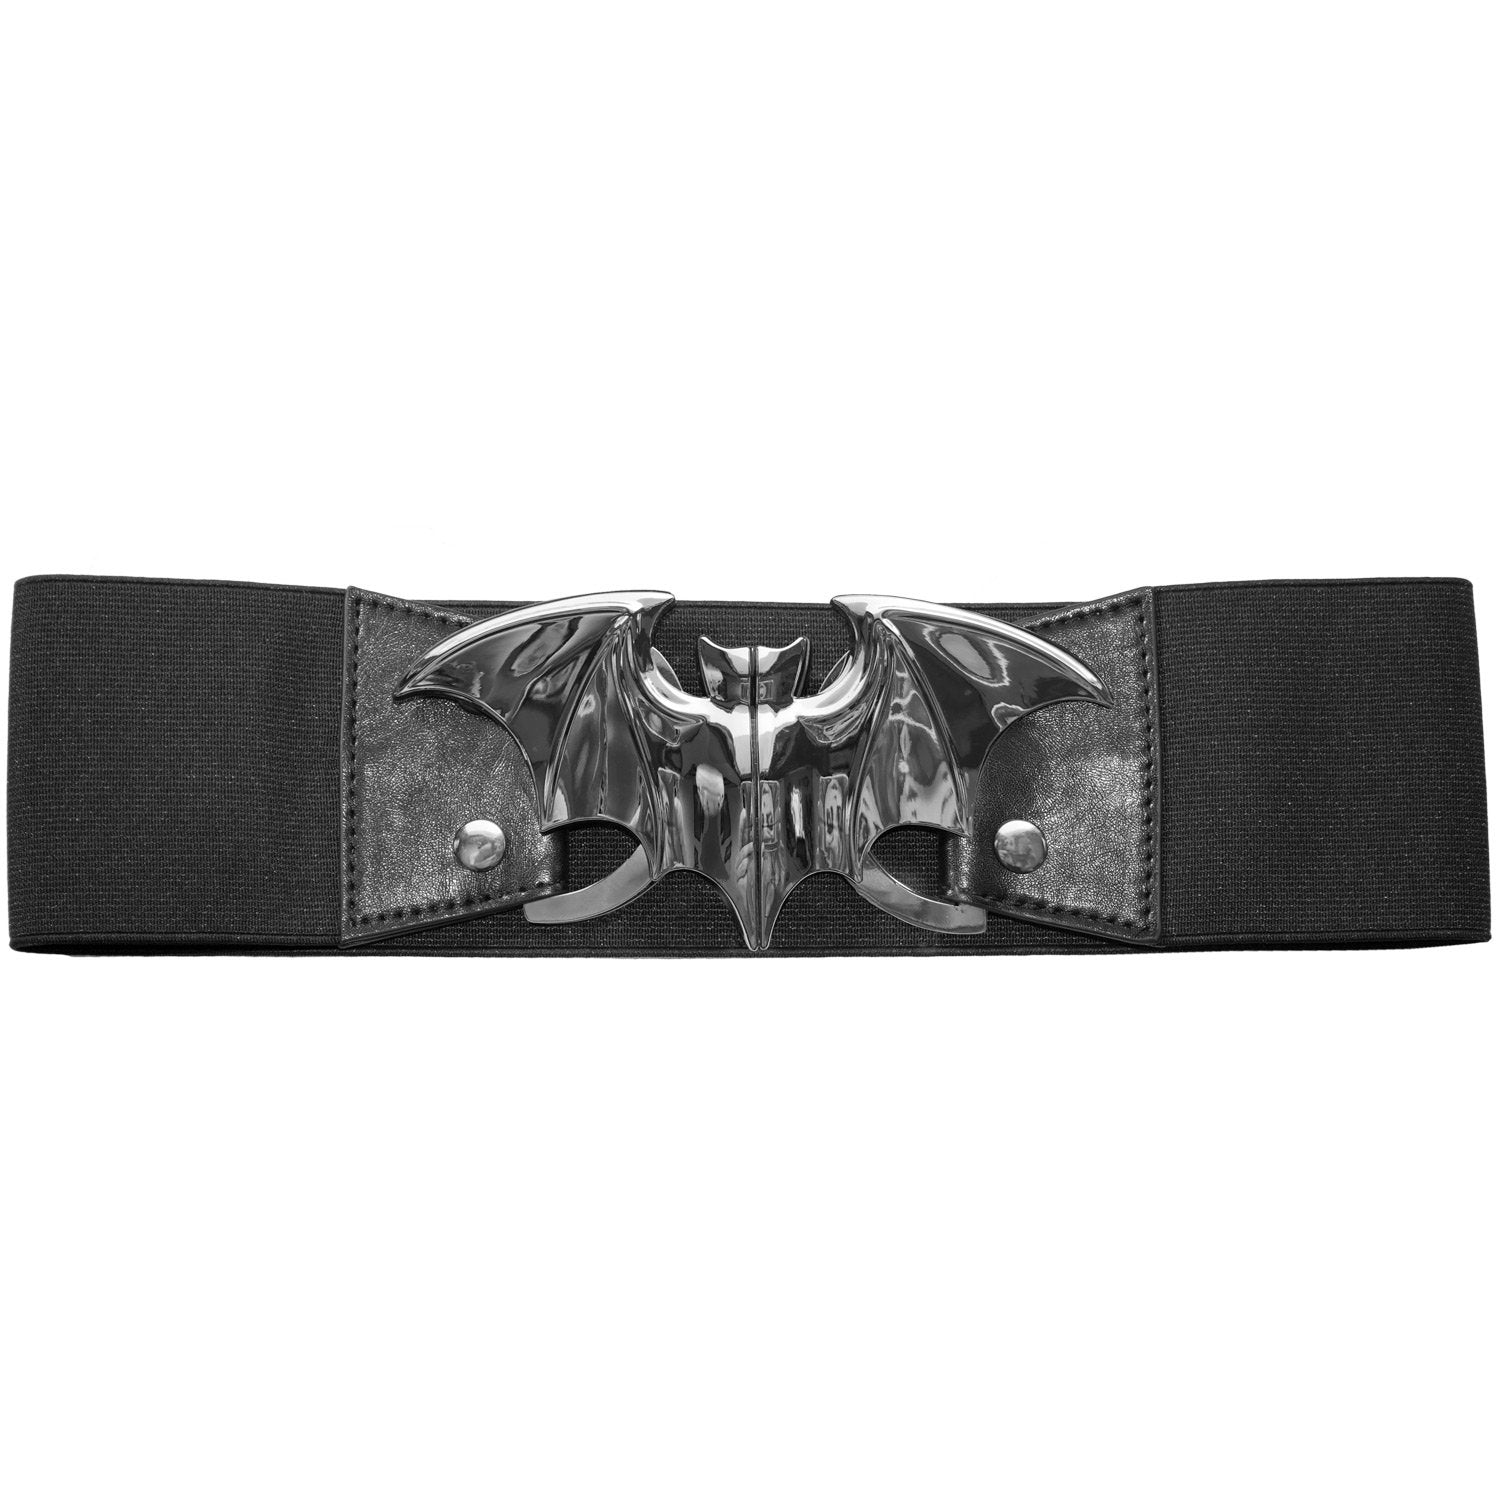 Bewitching Bat Elastic Waist Belt in Noir